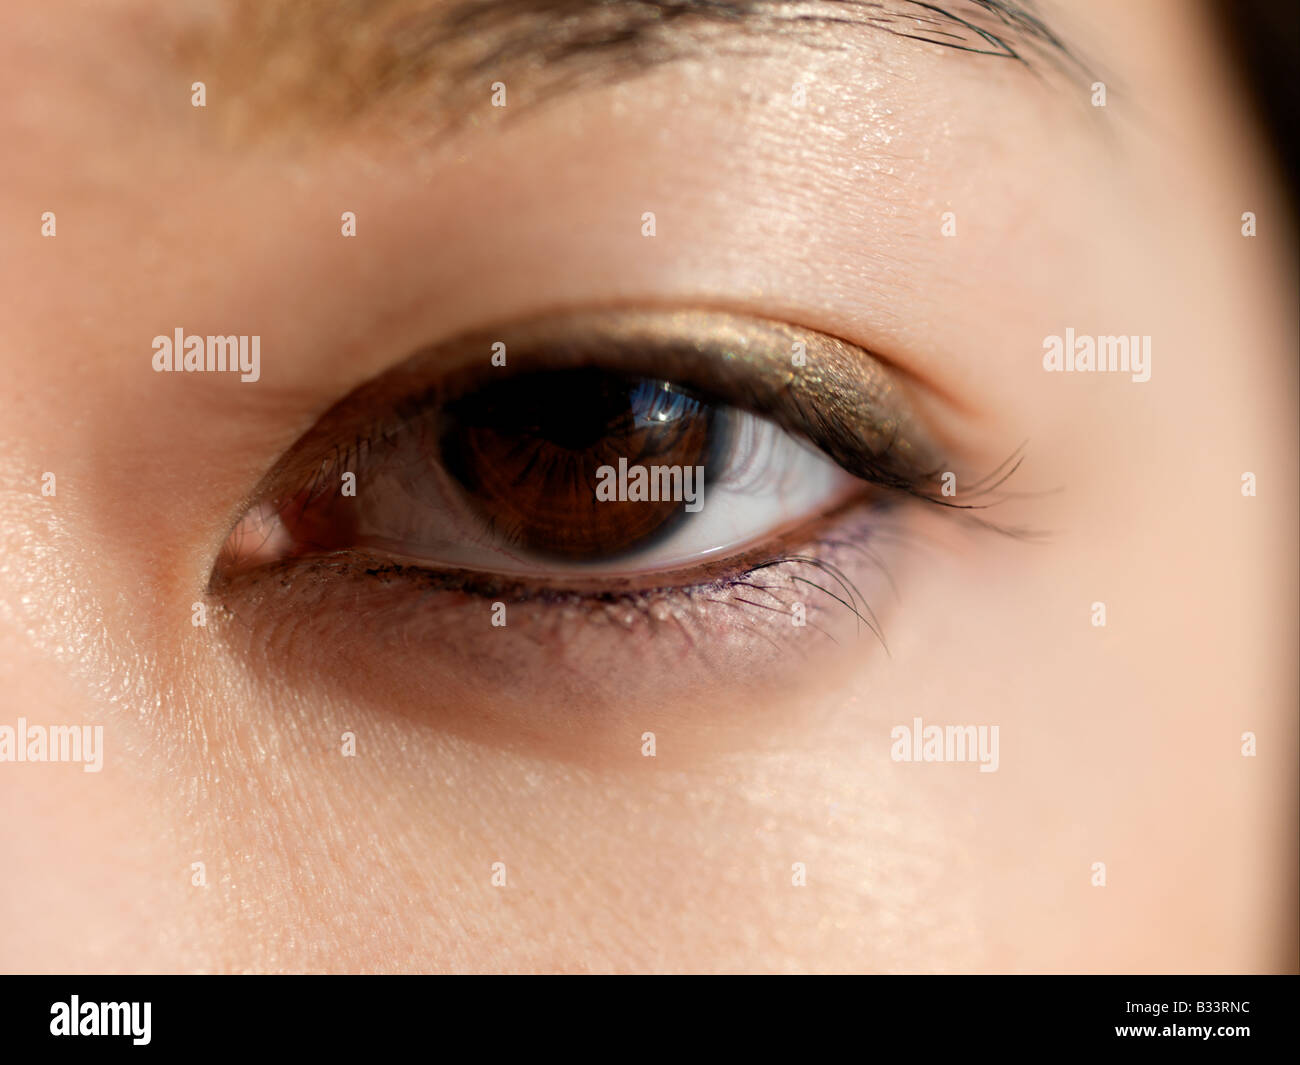 A close up of a young Asian's eye. - Stock Image